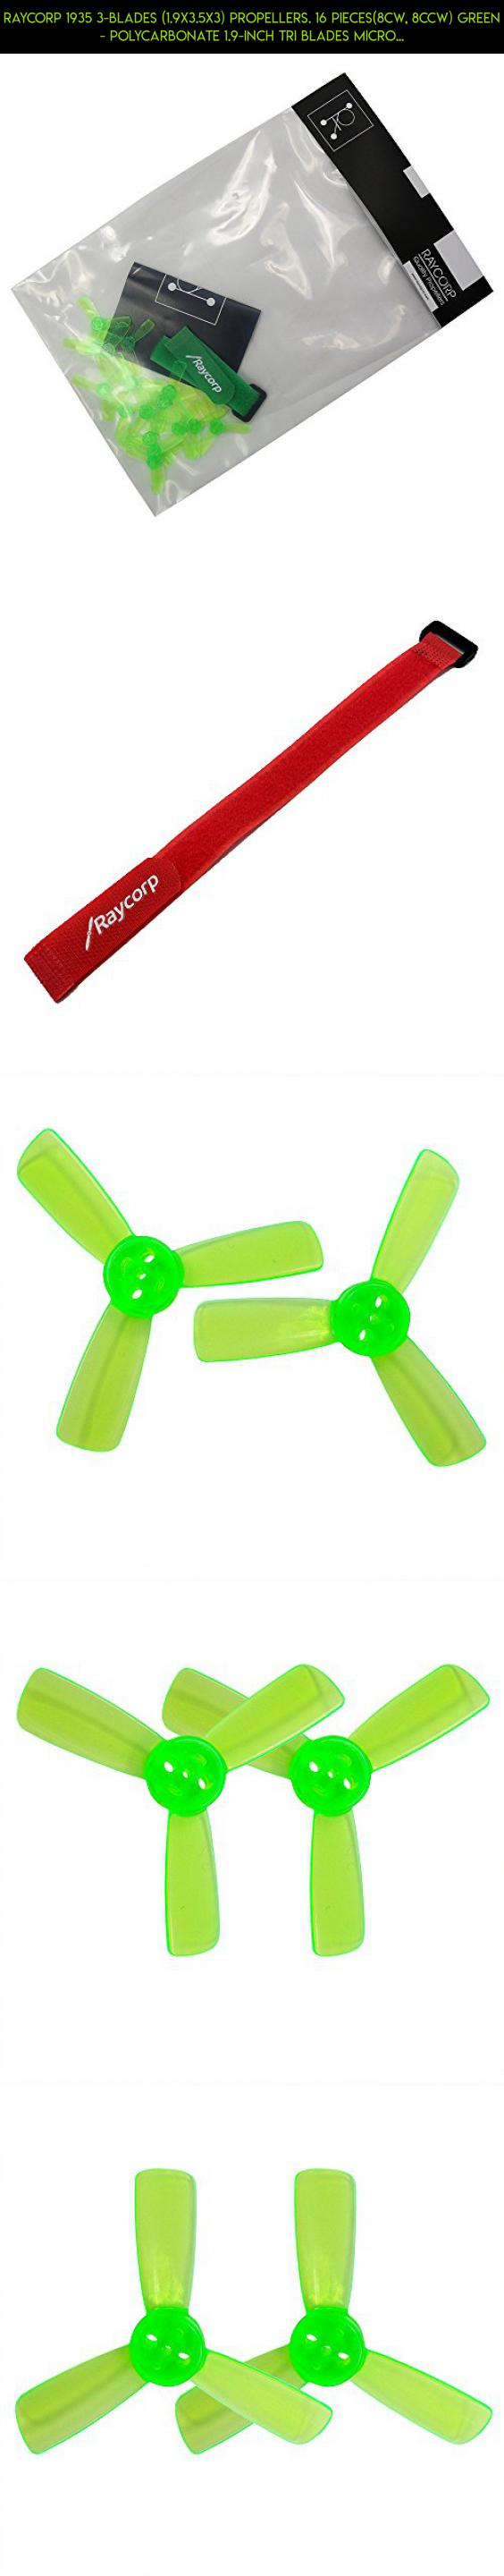 1.9x3.5x3 16 Pieces Battery Strap Propellers RAYCorp 1935 3-Blades Green Polycarbonate 1.9-inch Tri Blades Micro Quadcopters /& Multirotors Props 8CW, 8CCW